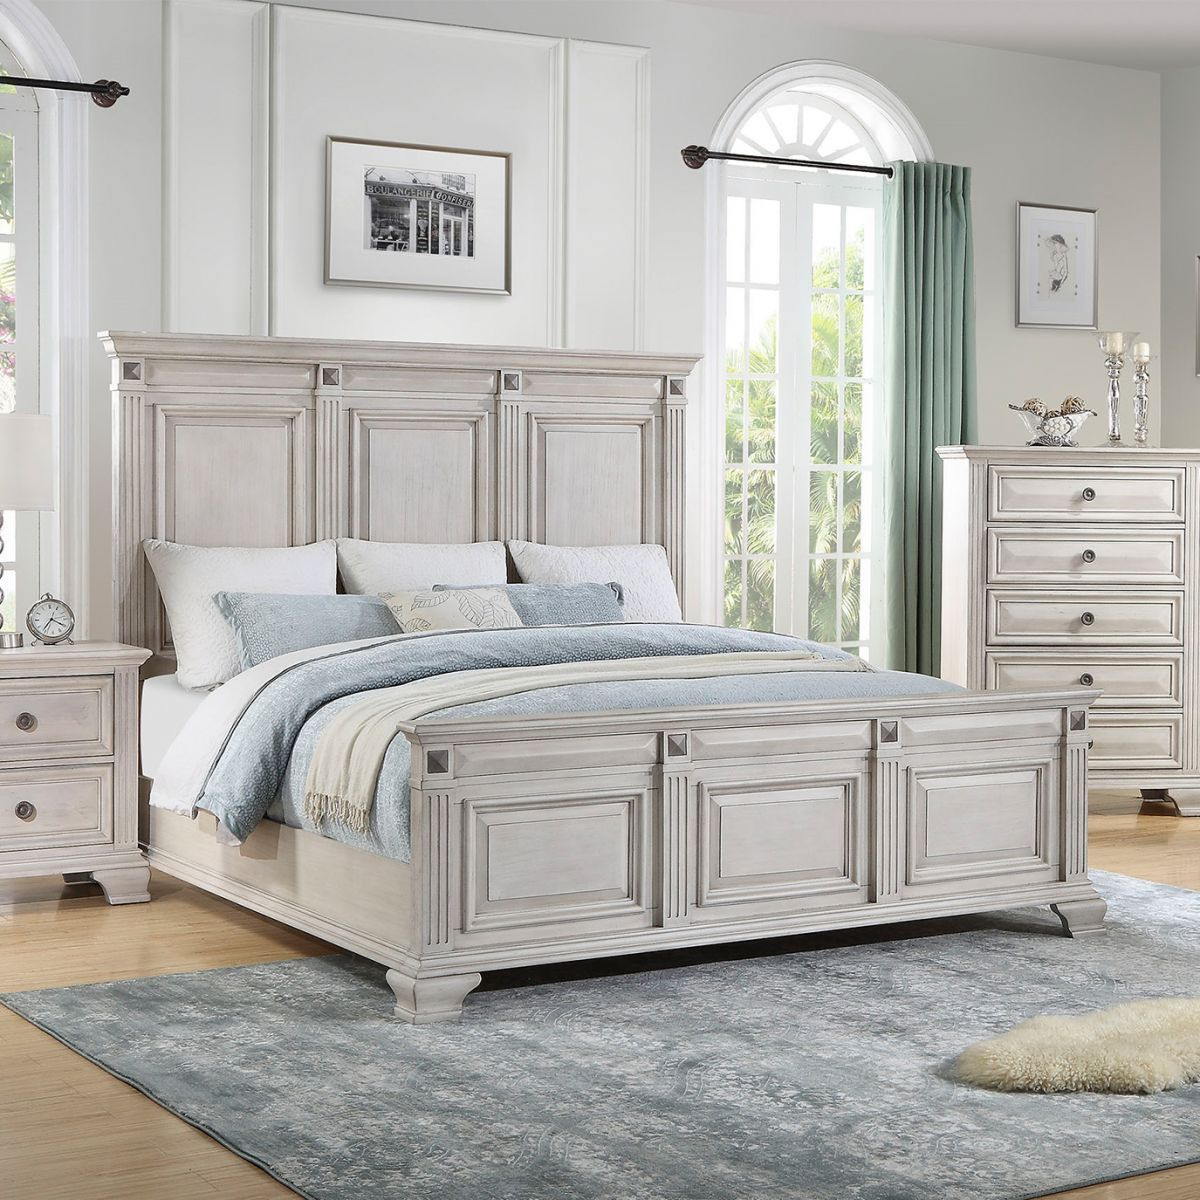 15 Good 5 Drawer Whitewash Dresser In Bedroom Sample Now There S A Space For Everything With Lot White Bedroom Set Bedroom Sets Queen Black Bedroom Furniture